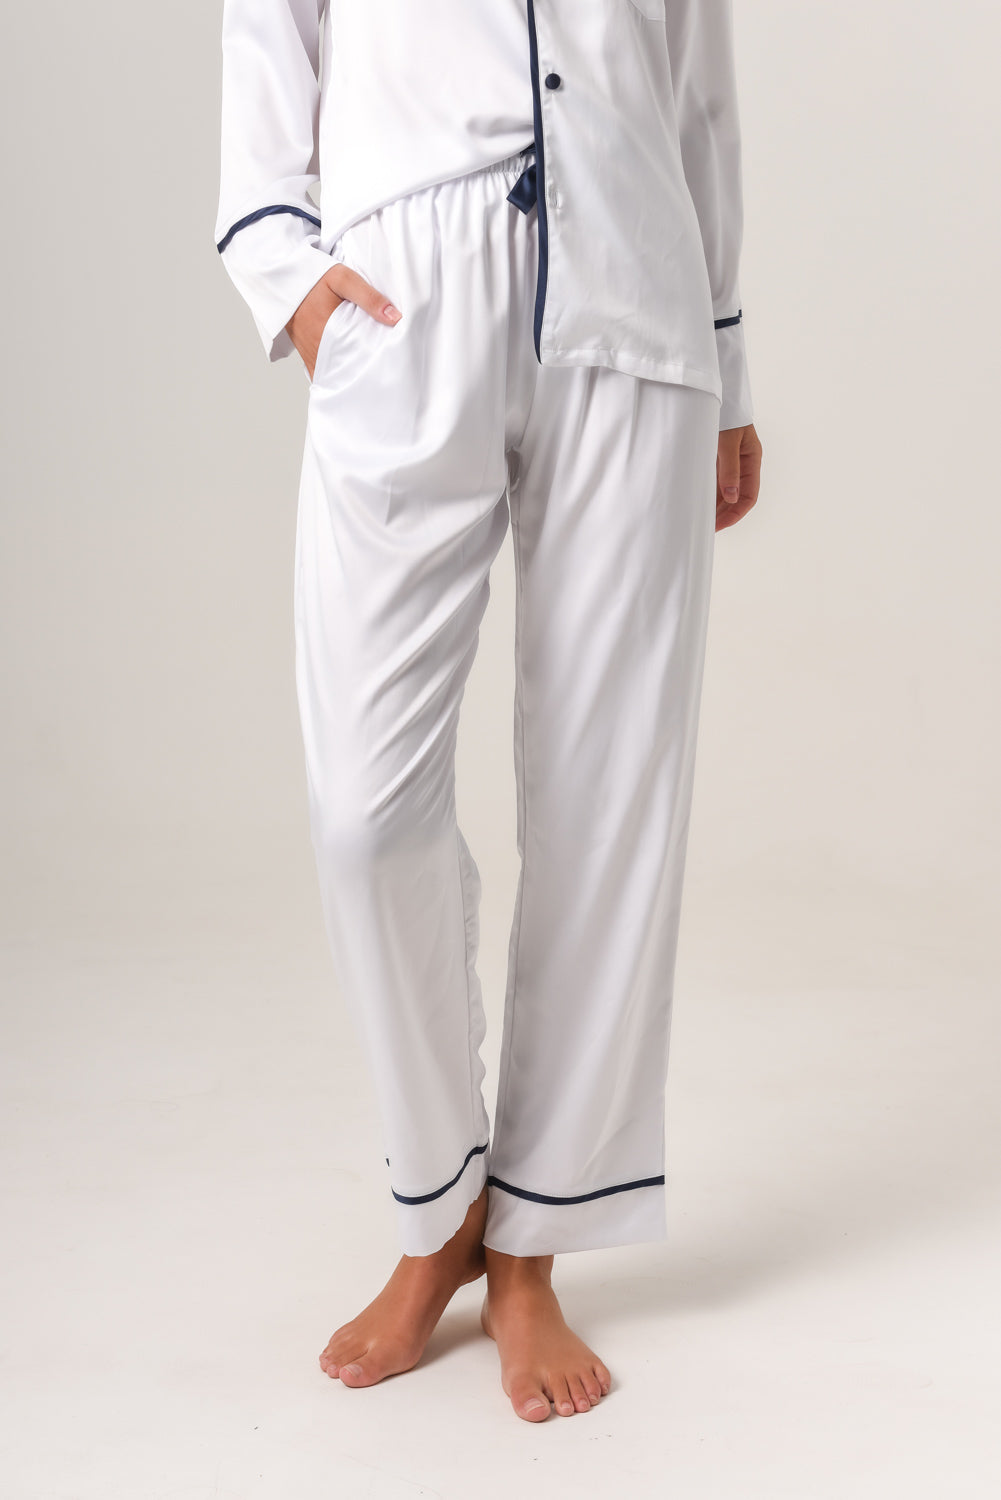 Women's Additional Pants - White With Navy Piping